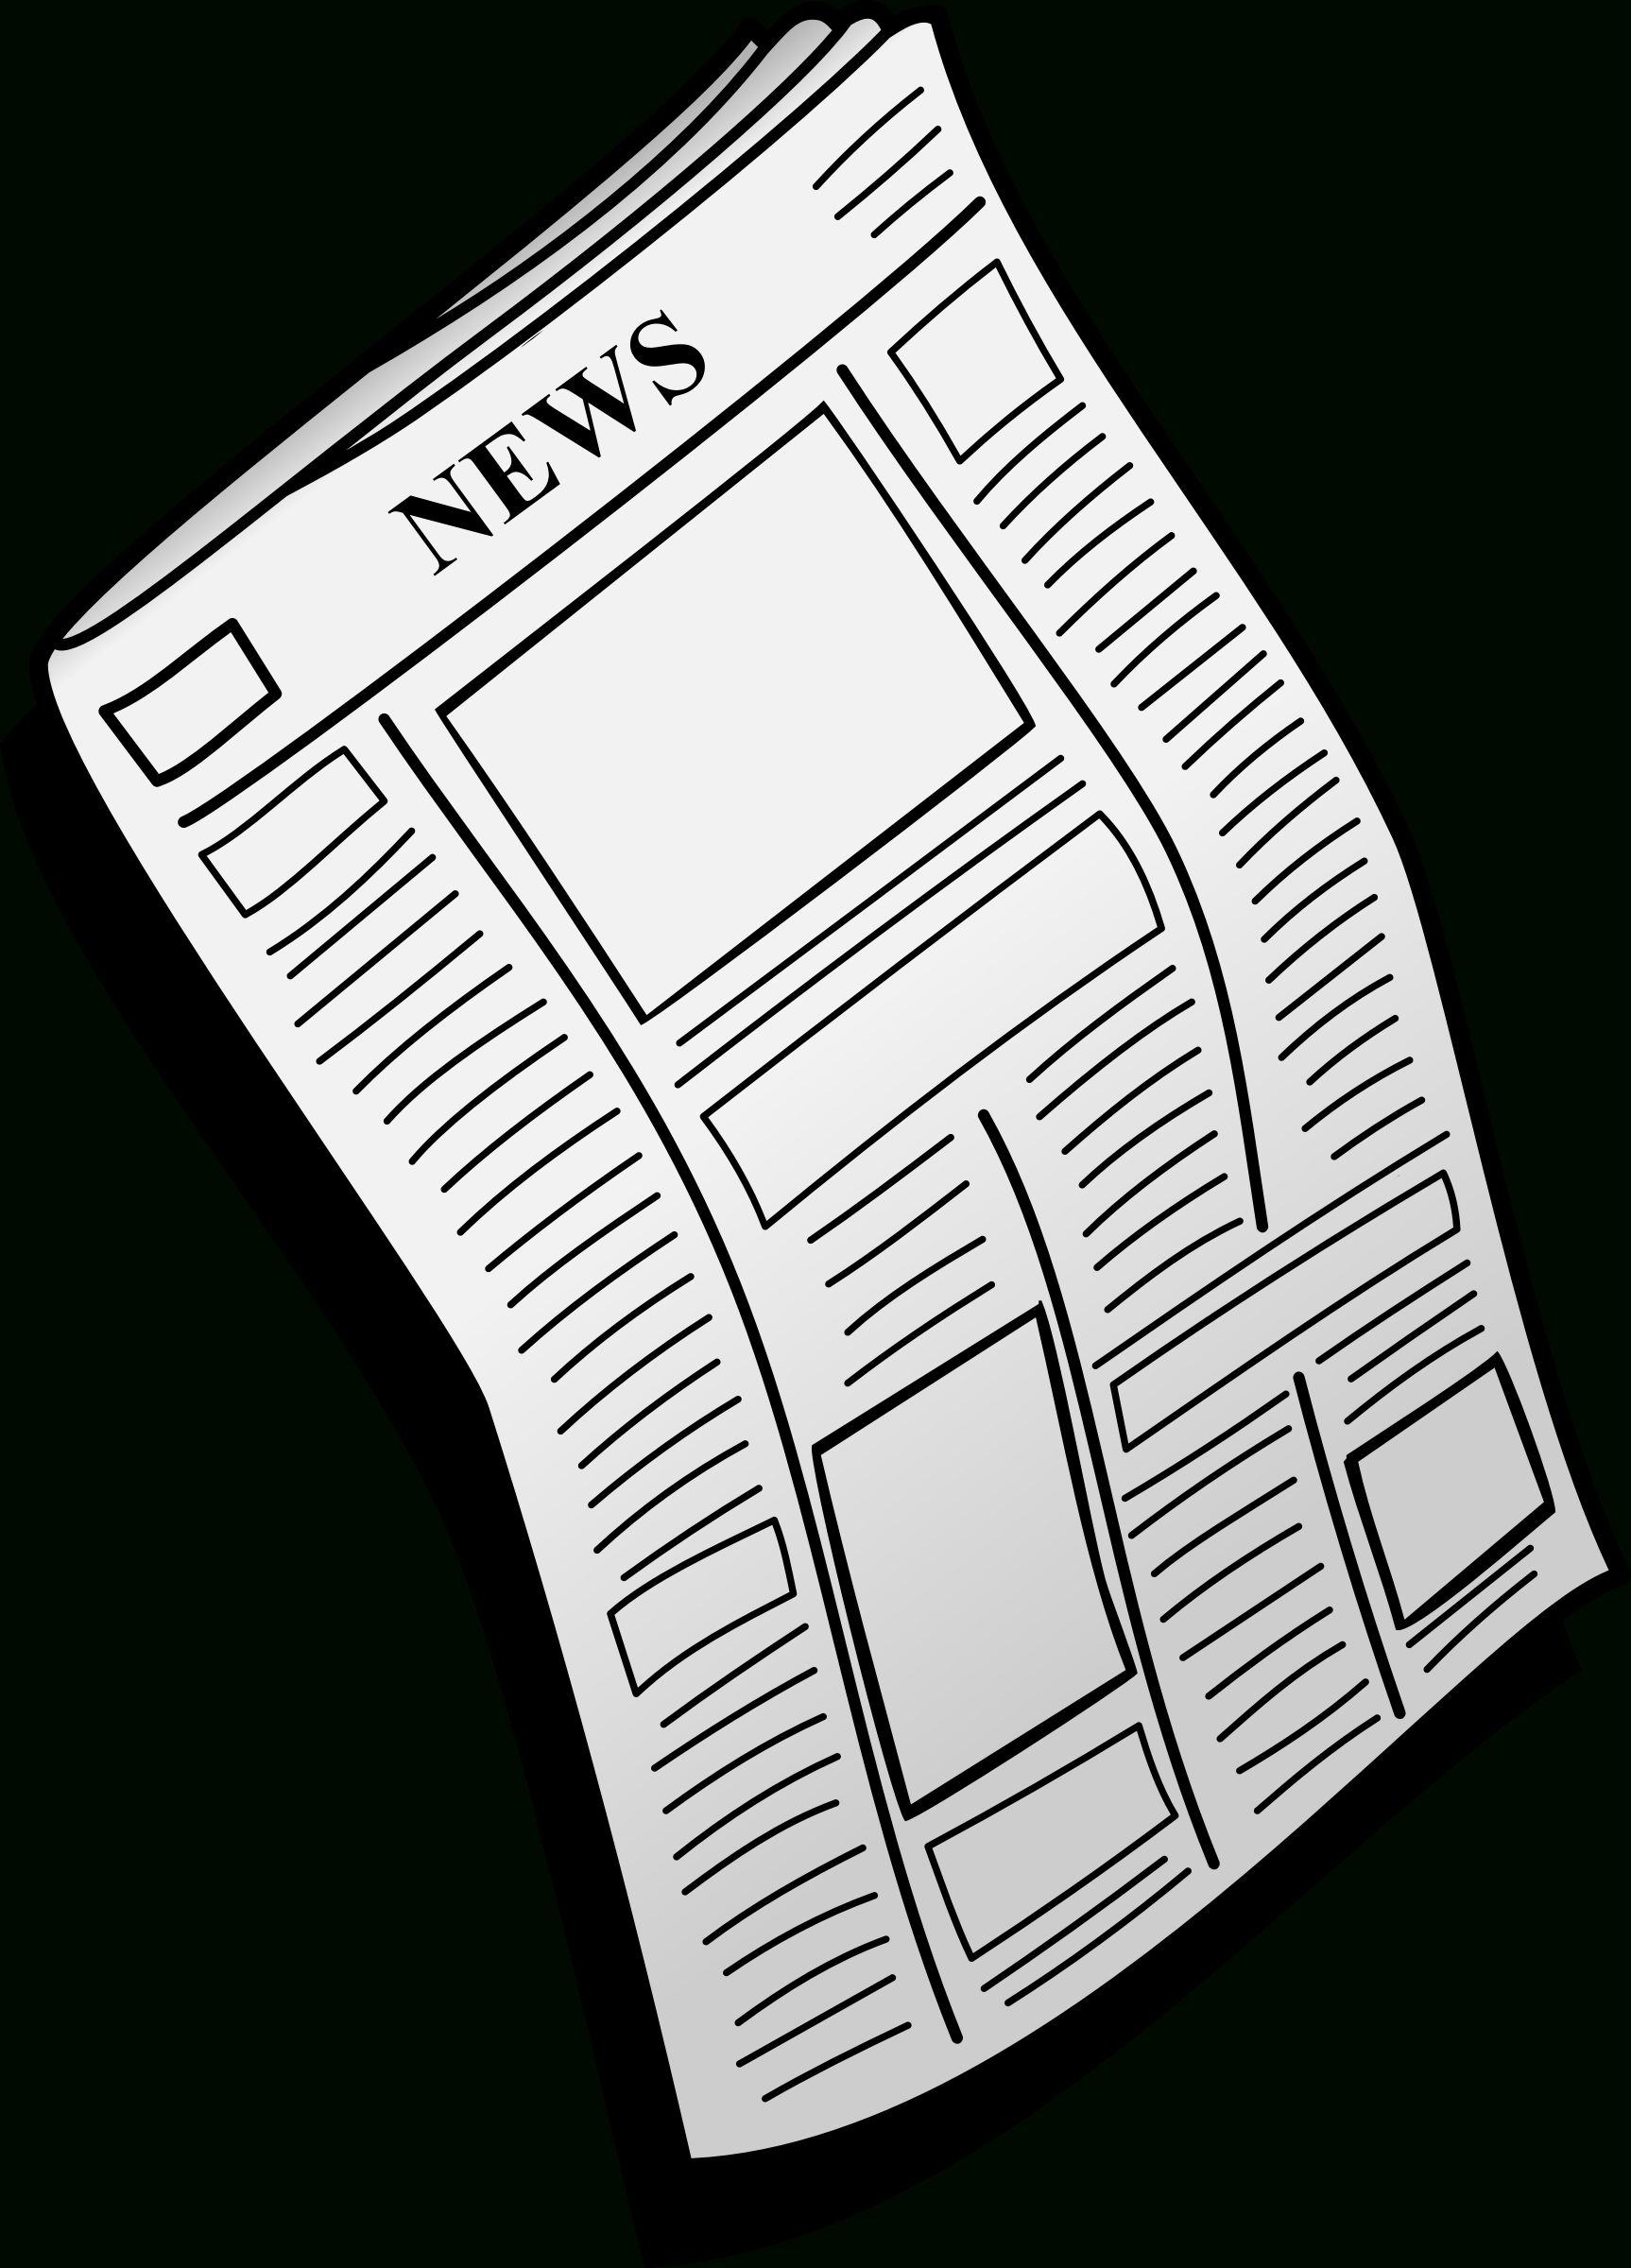 Download Newspaper Transparent Hq Png Image Freepngimg Pertaining To Newspaper Transparent22371 Graffiti Lettering Natural Paper Textures Meaningful Tattoos